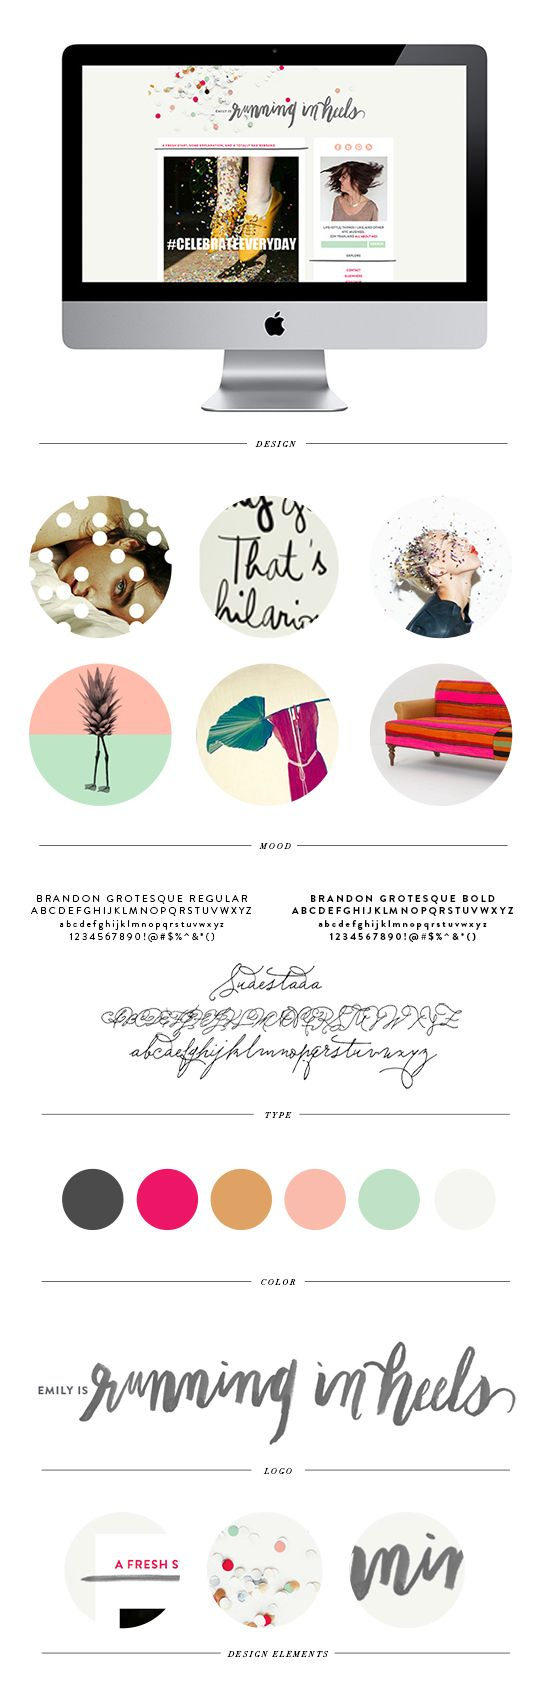 Running in Heels - Blog Design - Brand Elements - by Pinegate Road